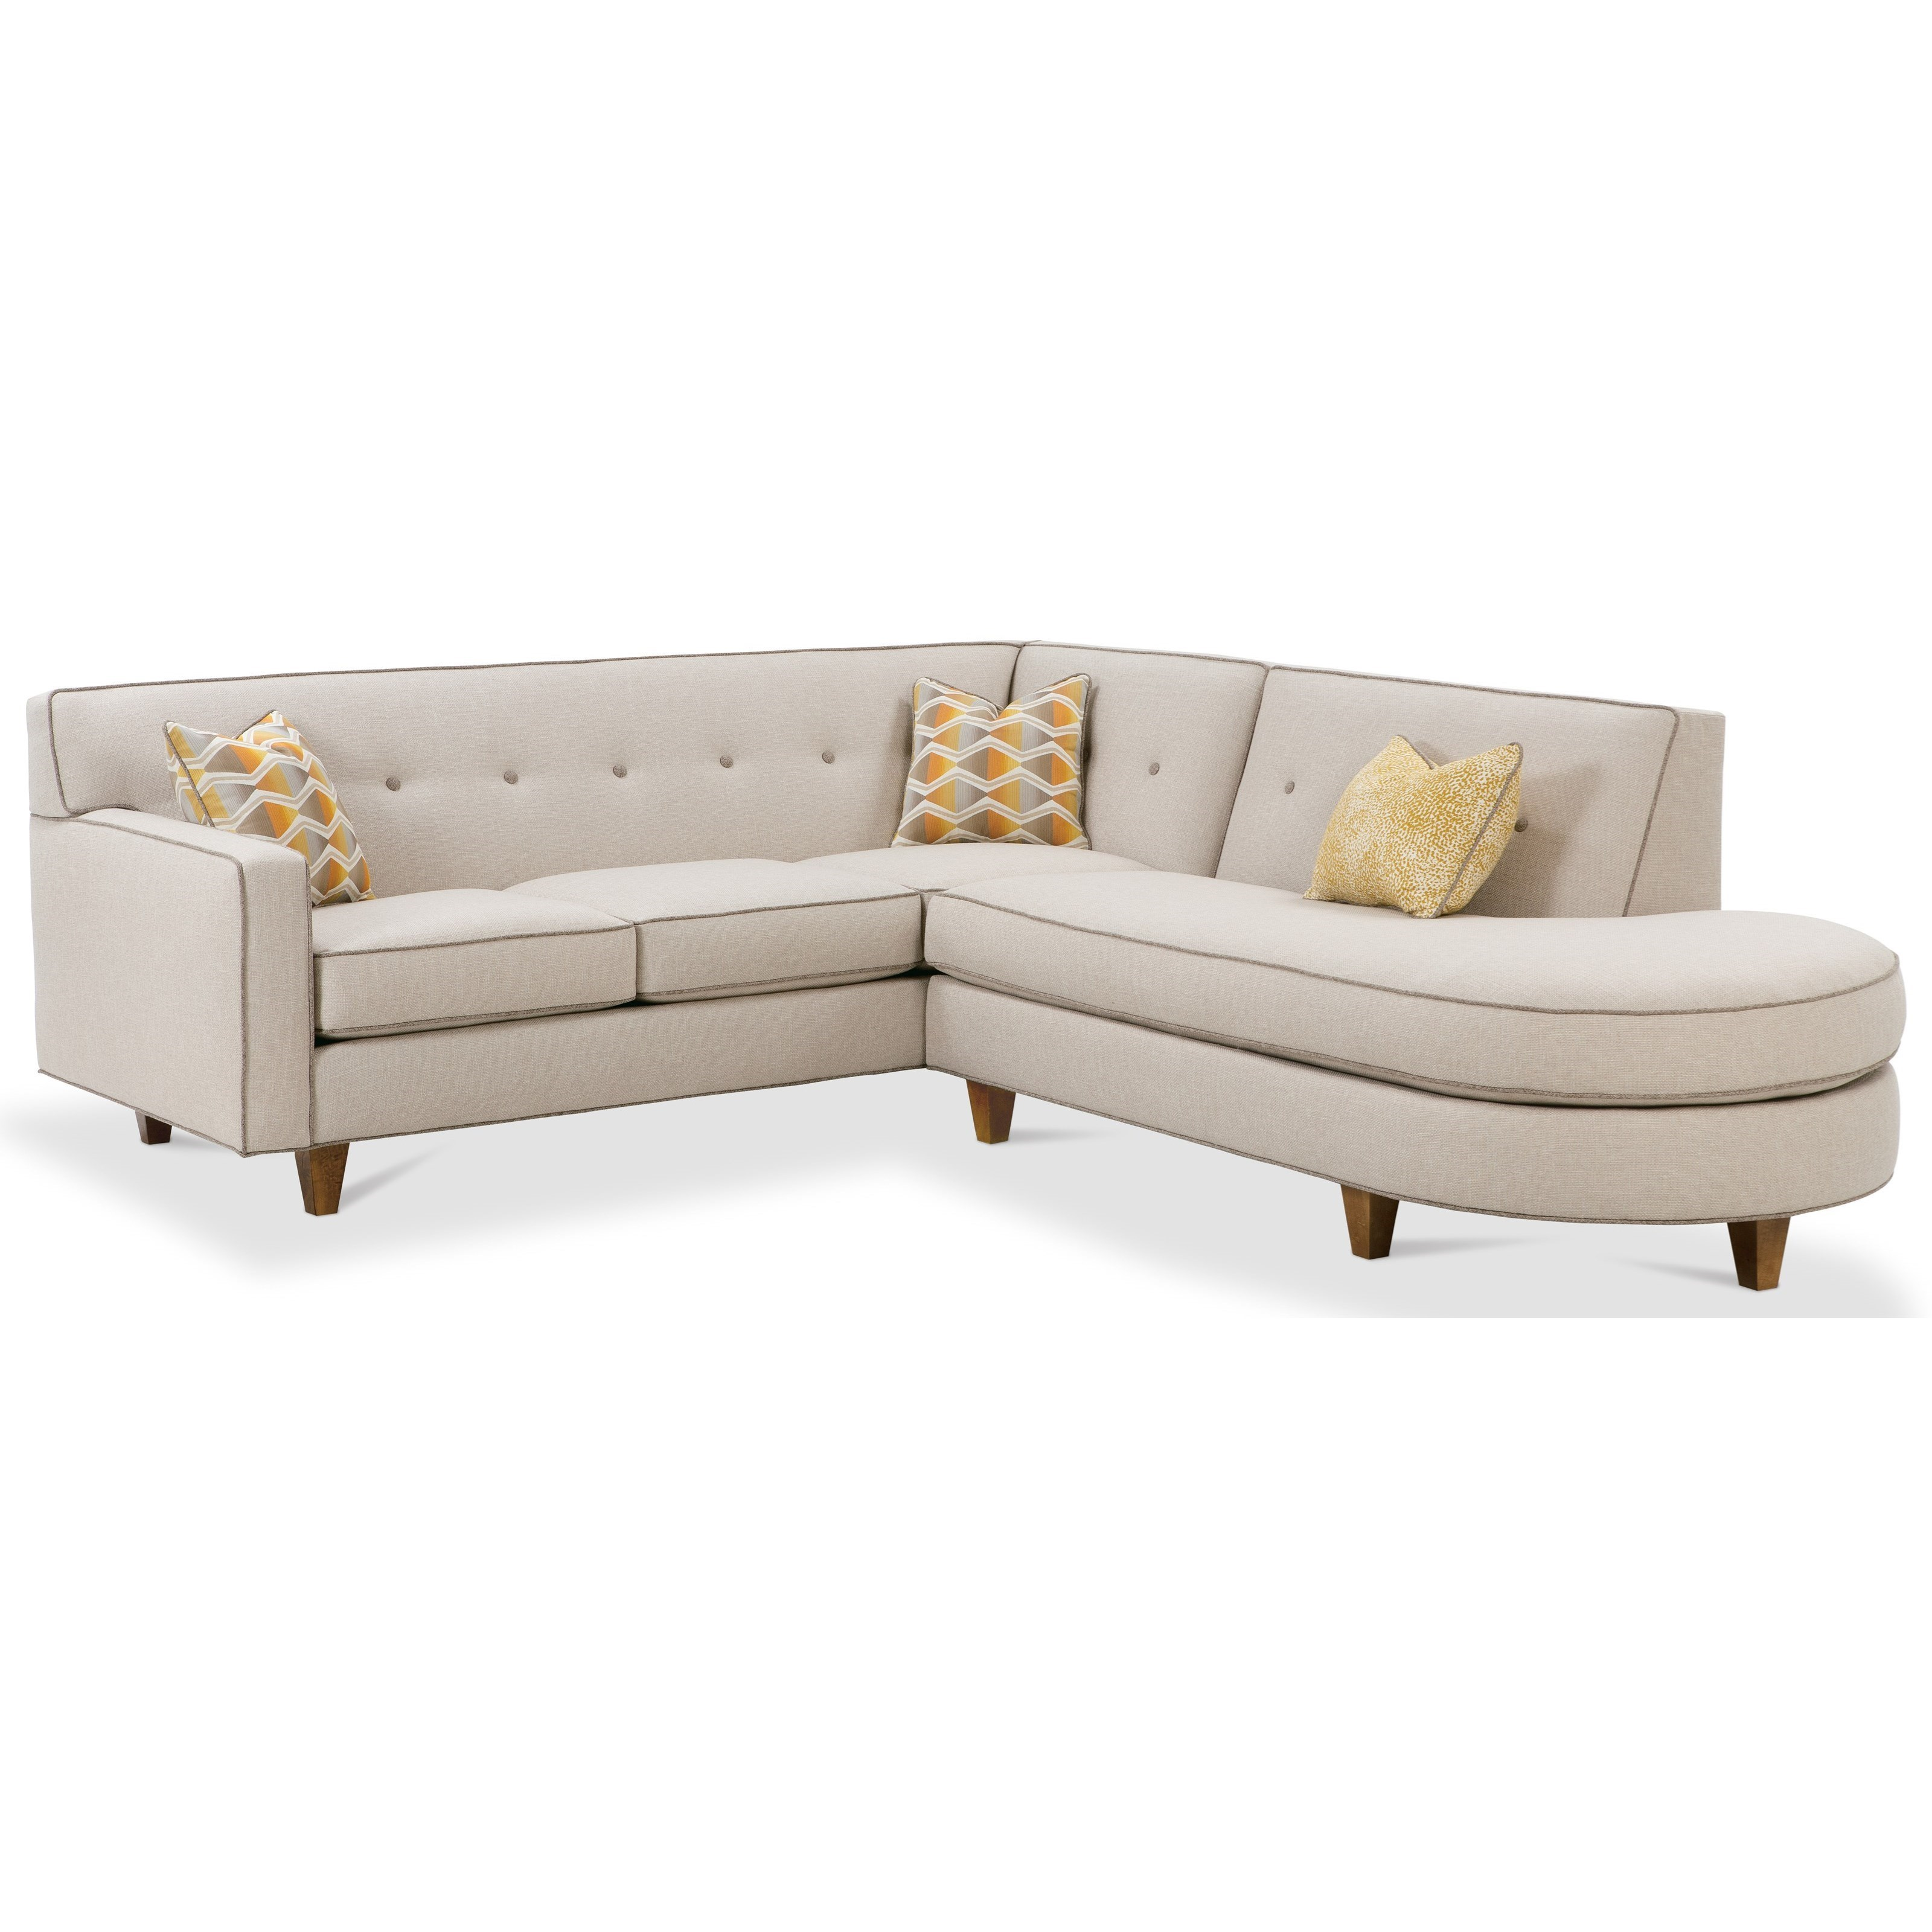 Rowe DorsetContemporary 2 Piece Sectional Sofa ...